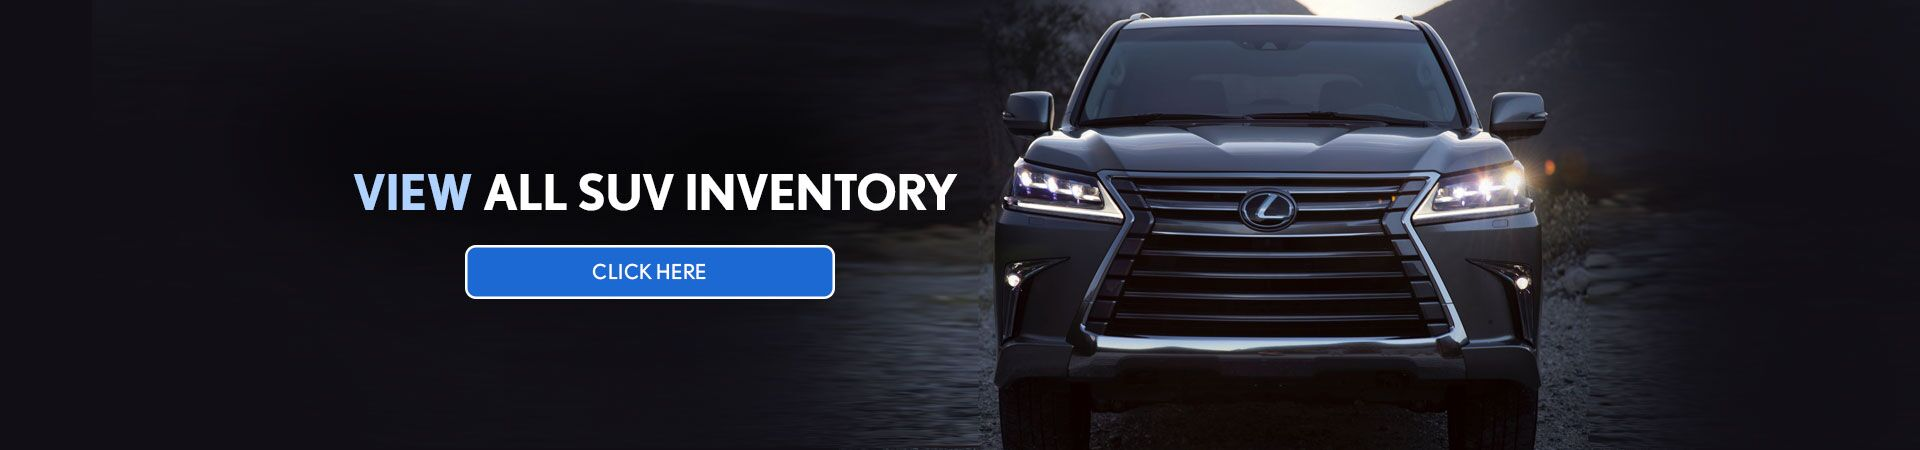 View SUV Inventory